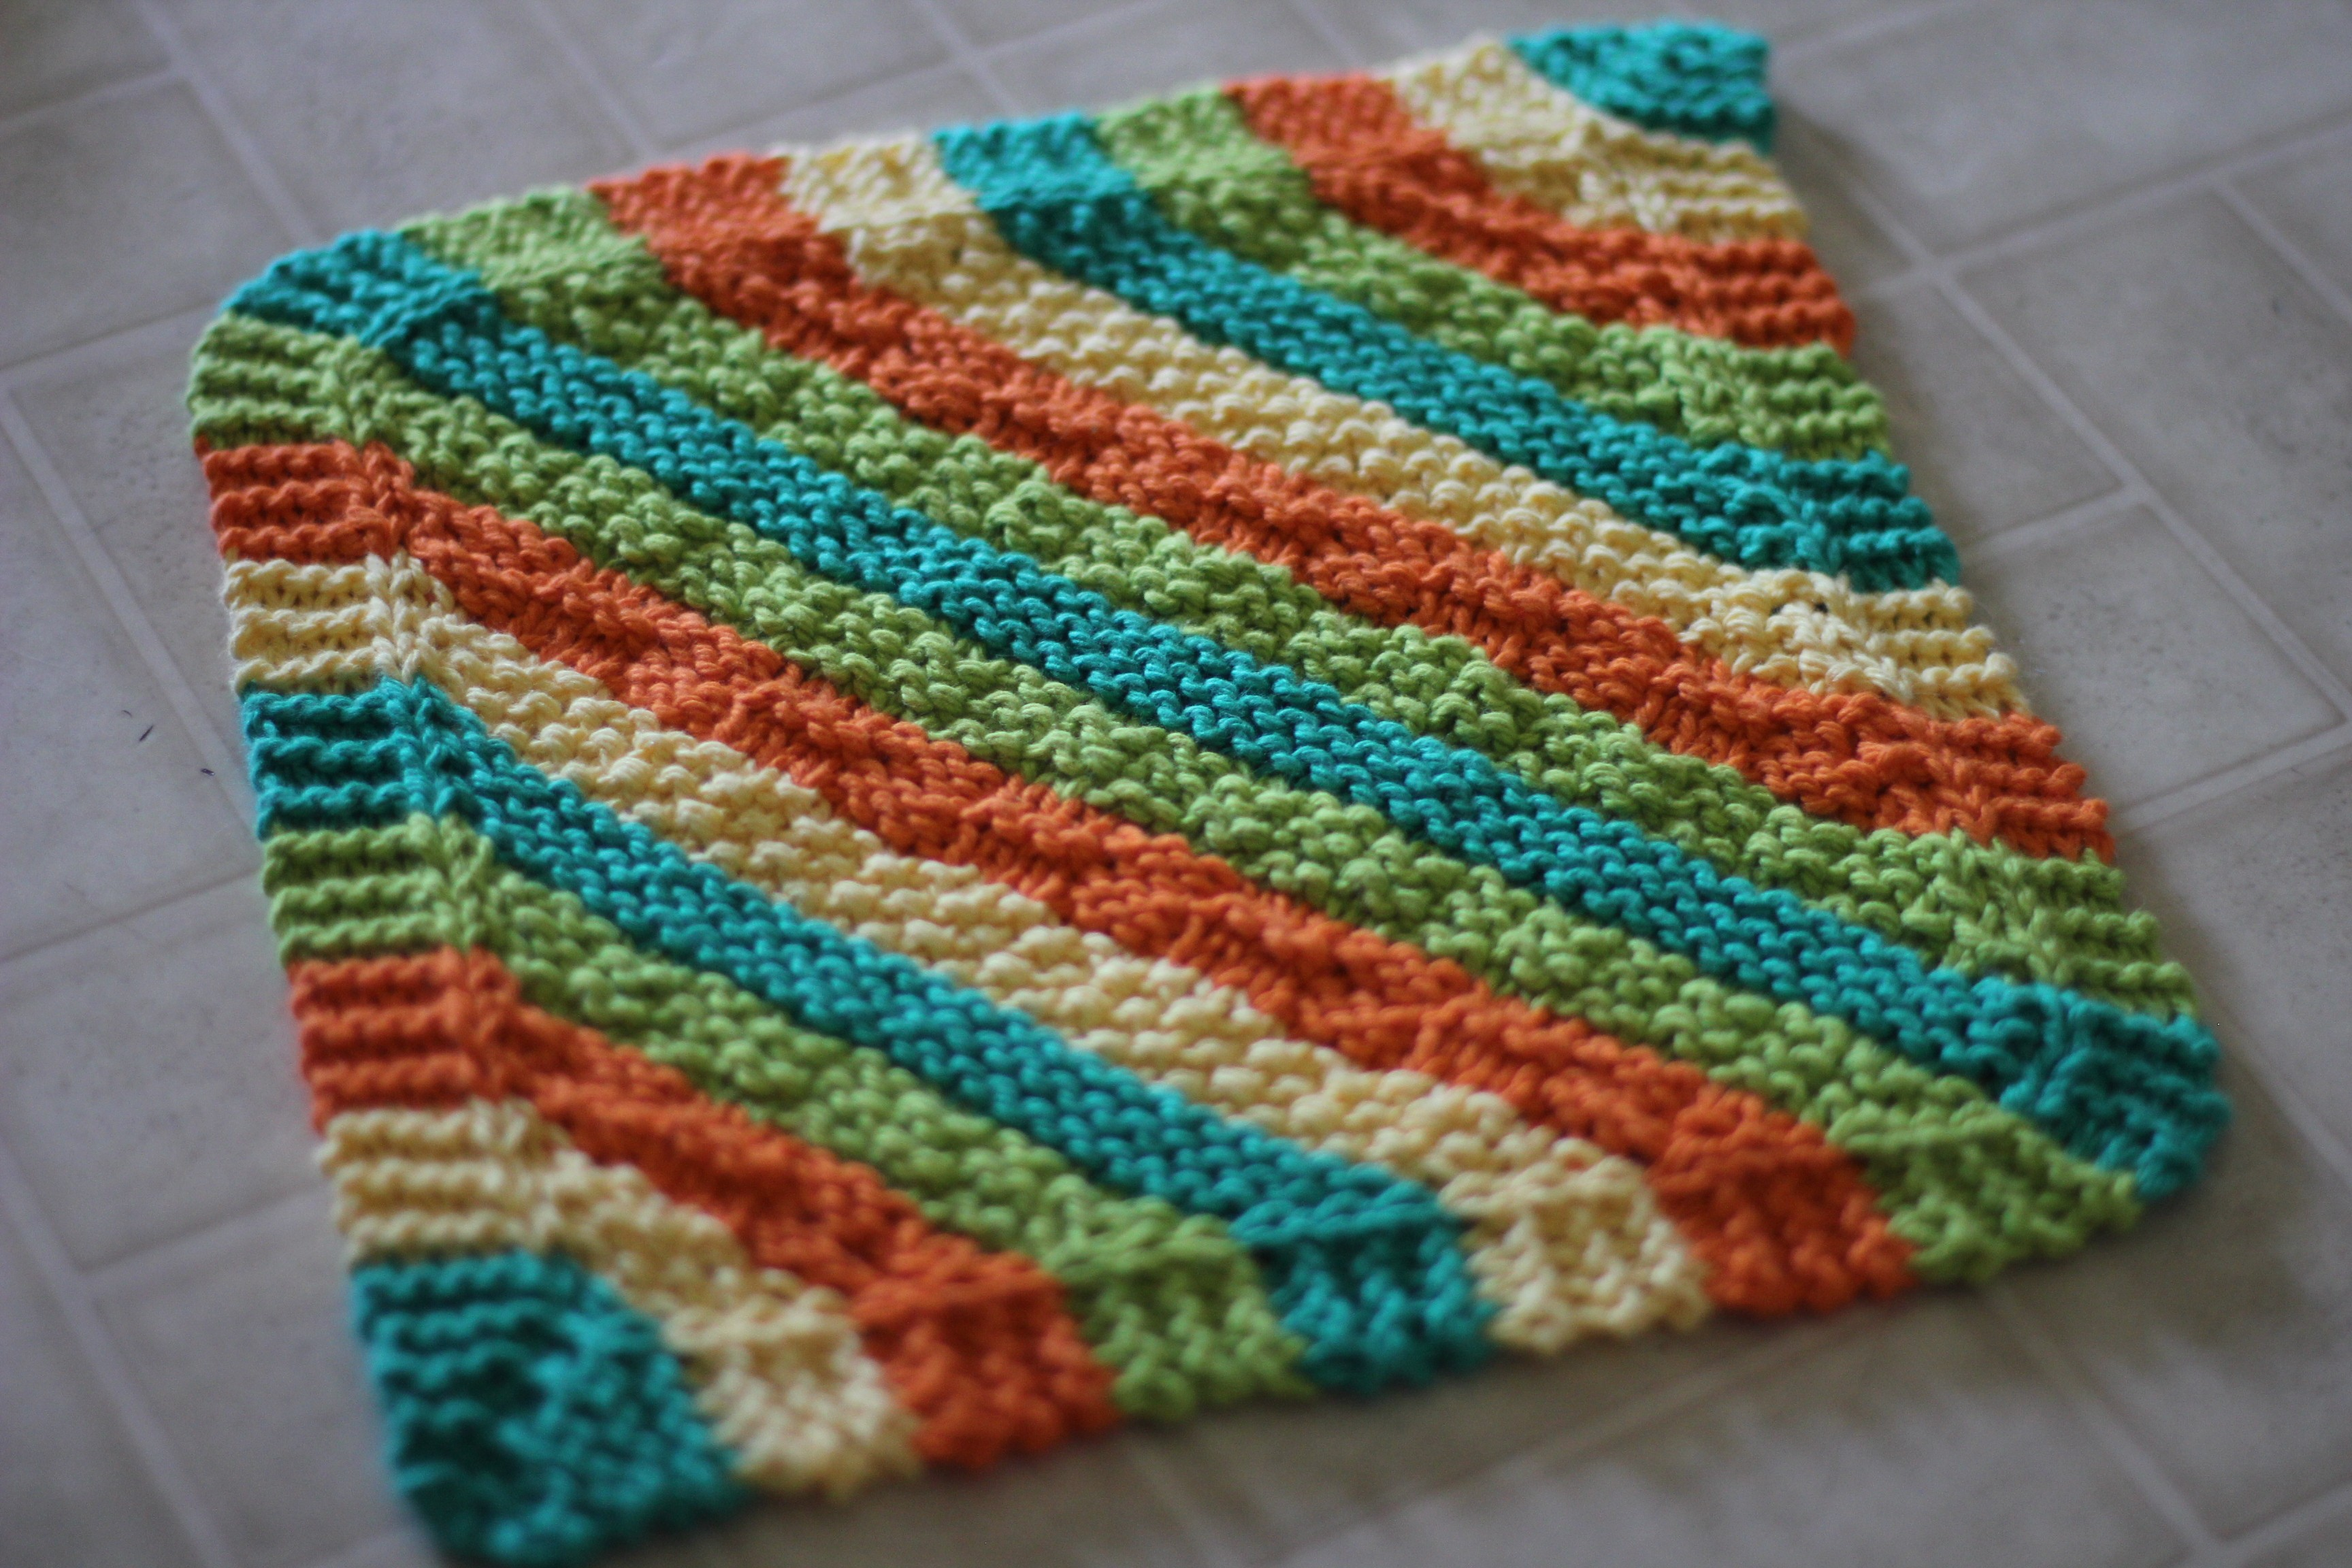 Dishcloth Knit Patterns Free : Knitted Dishcloth Patterns A Knitting Blog